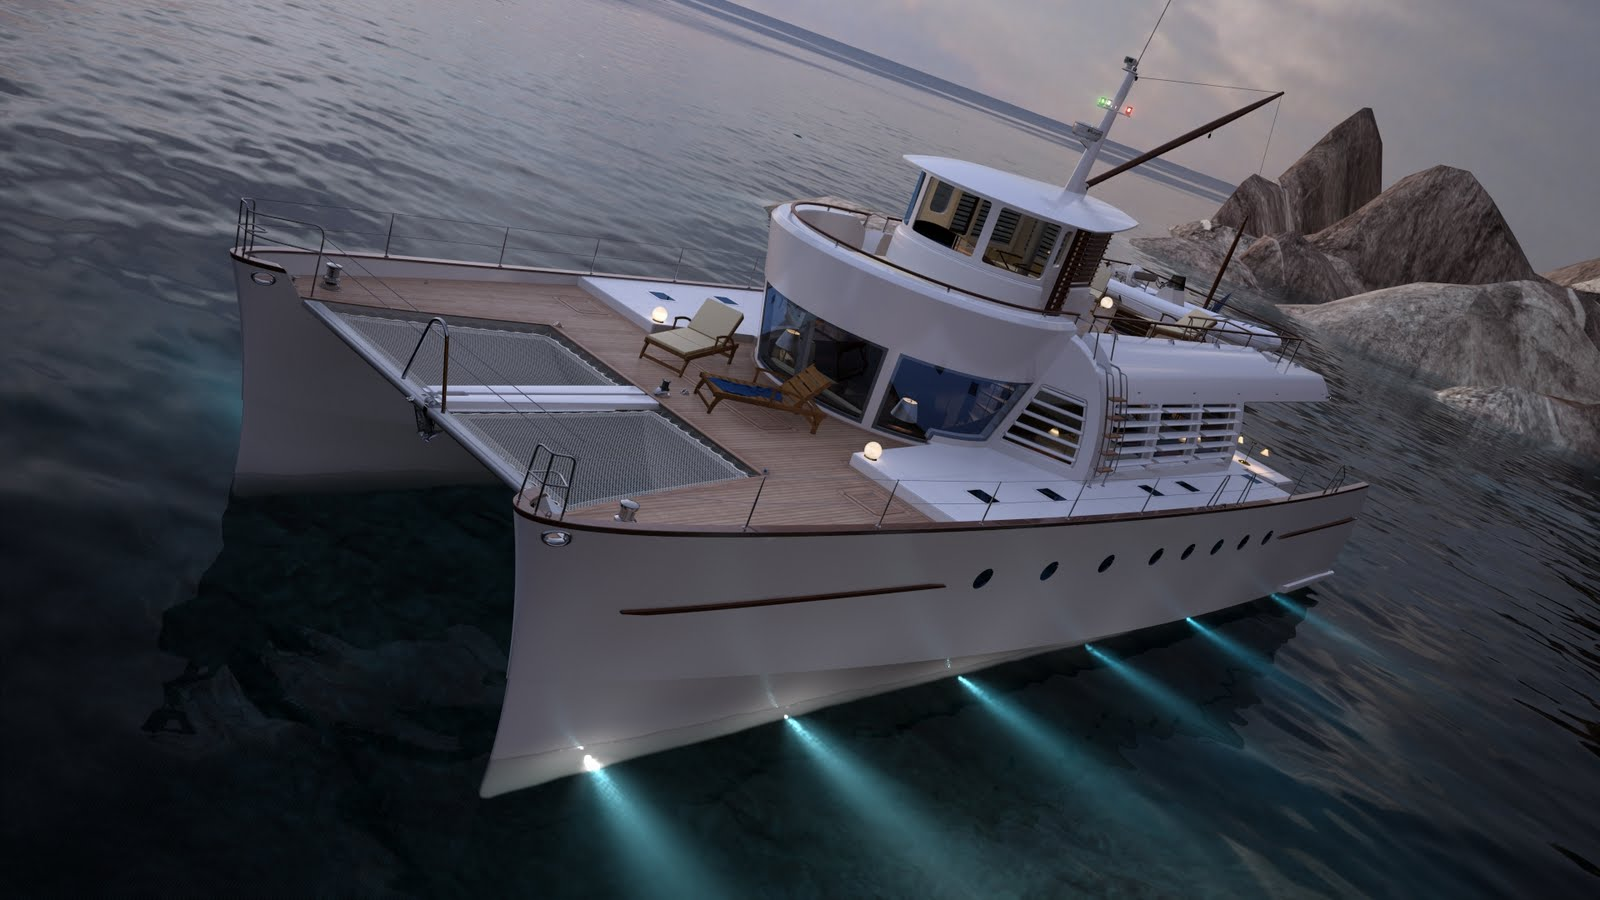 NOAH 76 LIFESTYLE CONCEPT AND FIRST INTERIOR IMAGES